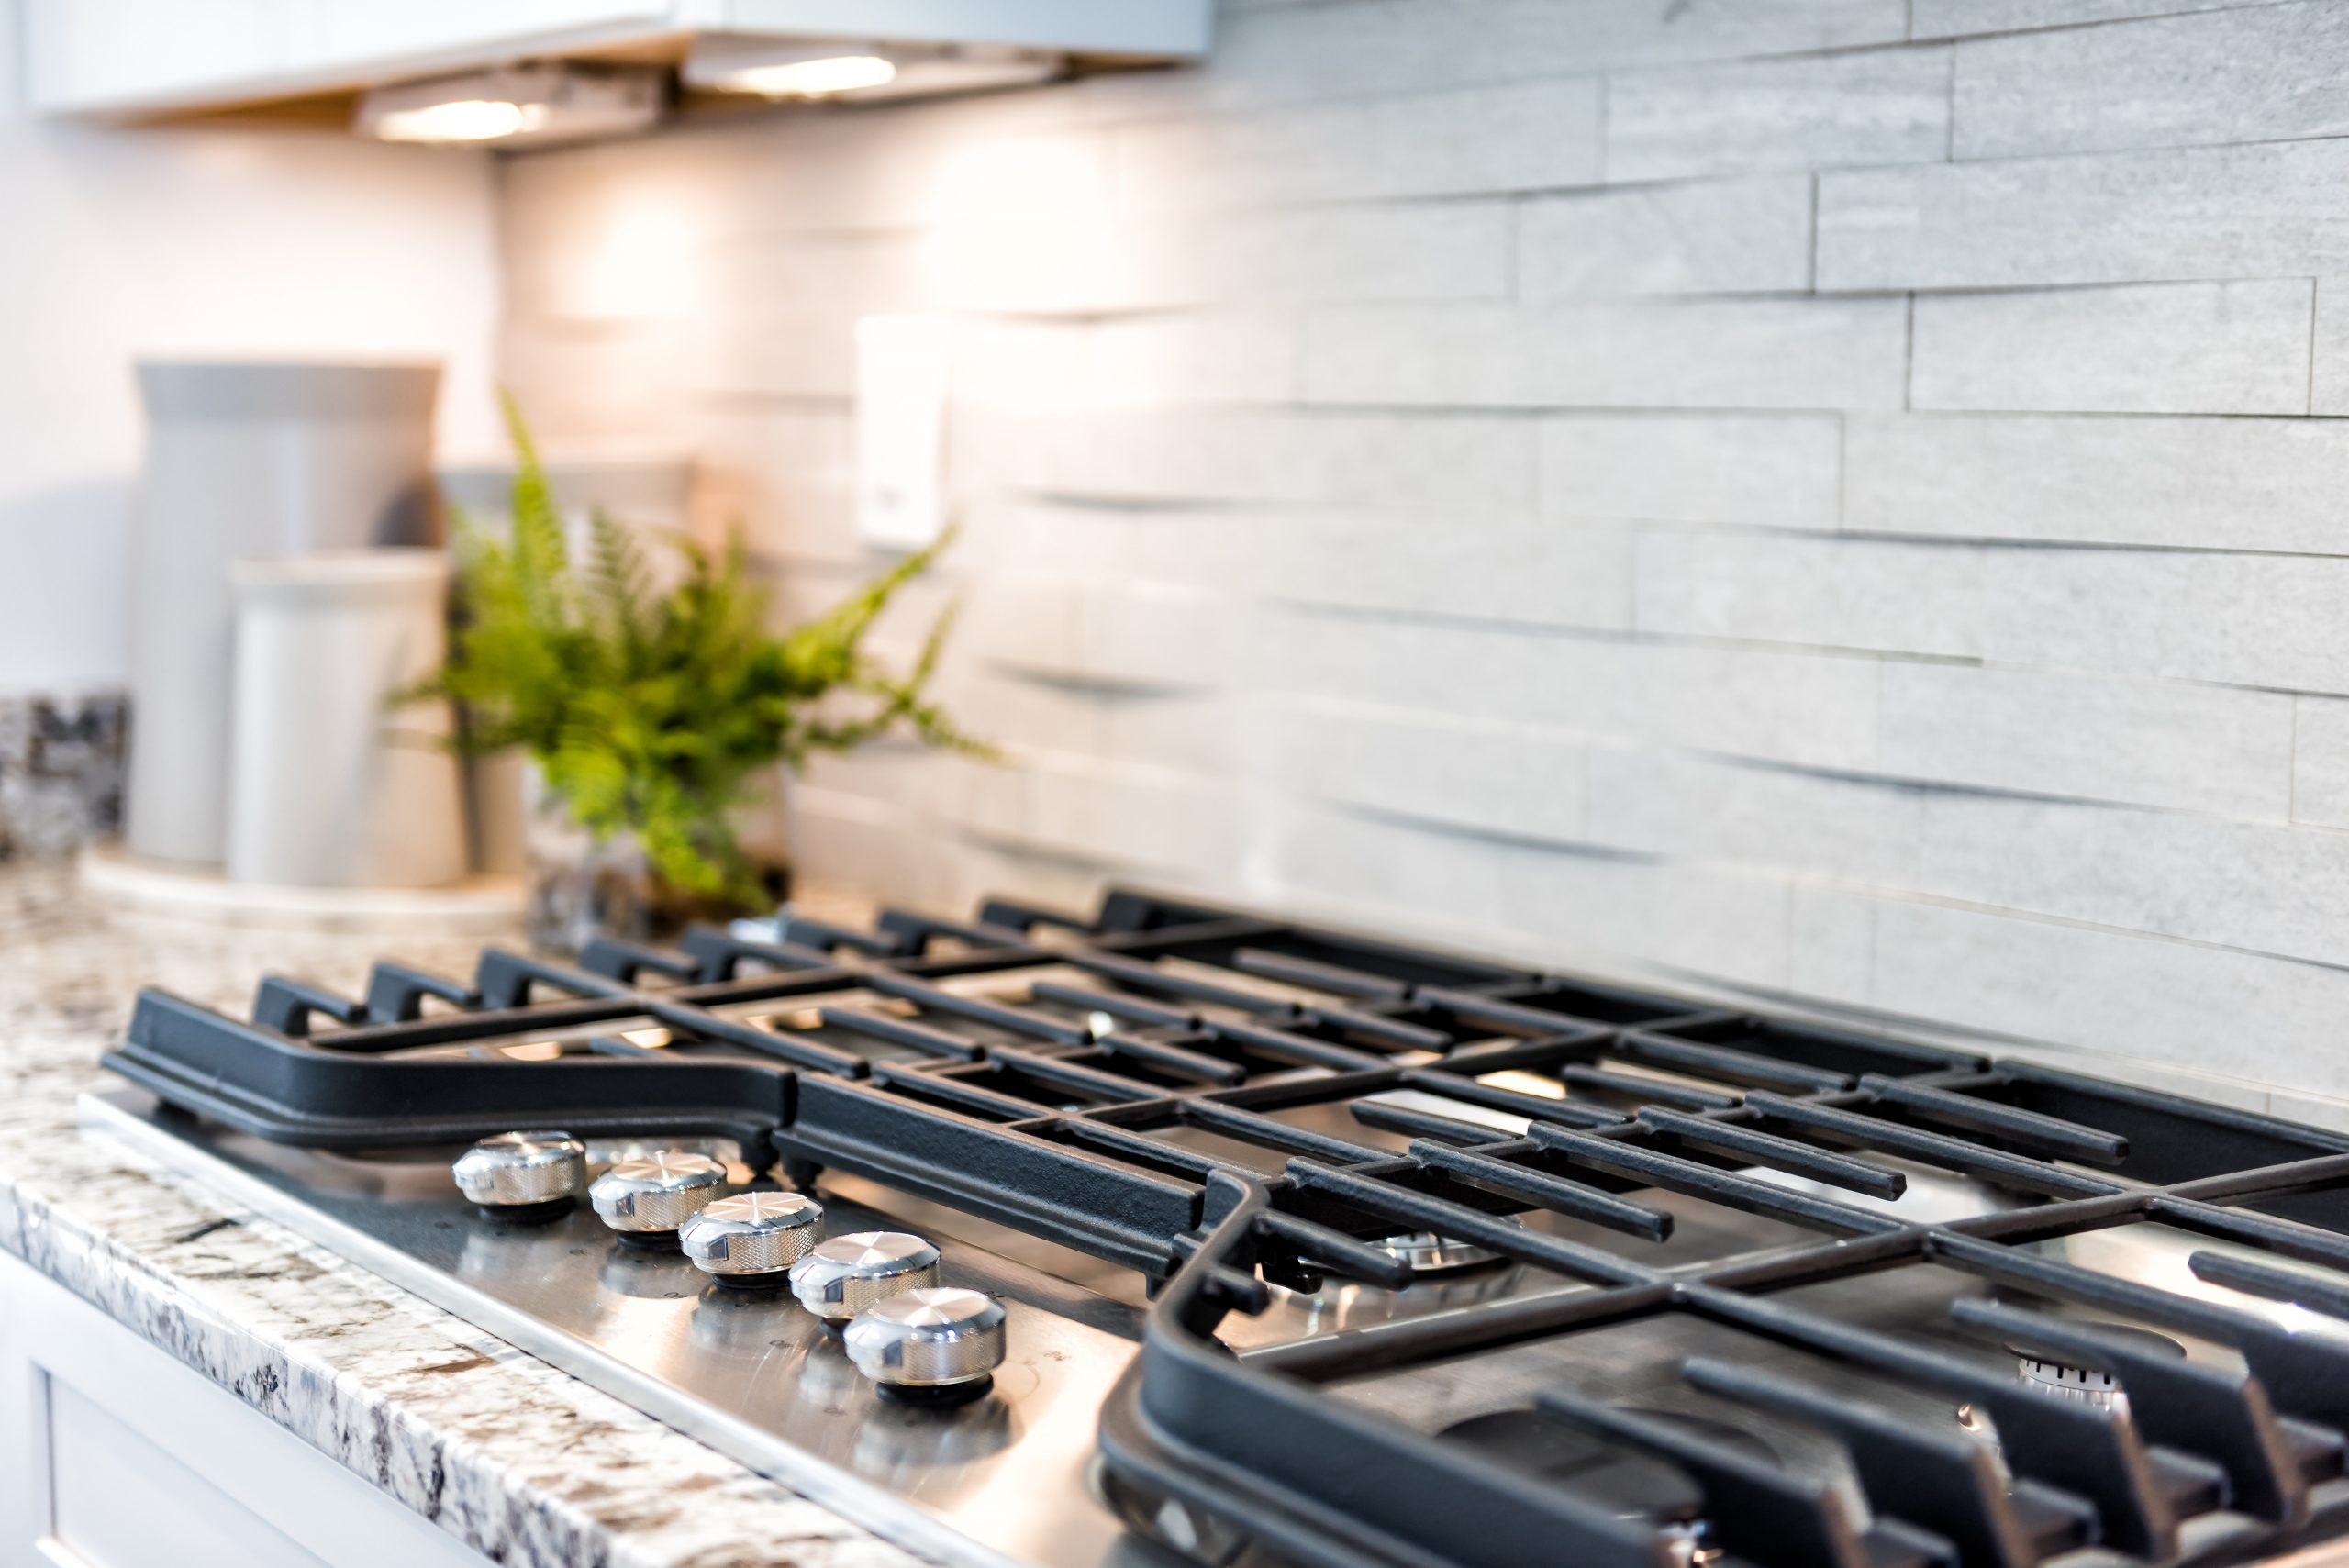 How to Check for Gas Leaks In and Around a Gas Cooktop Stove